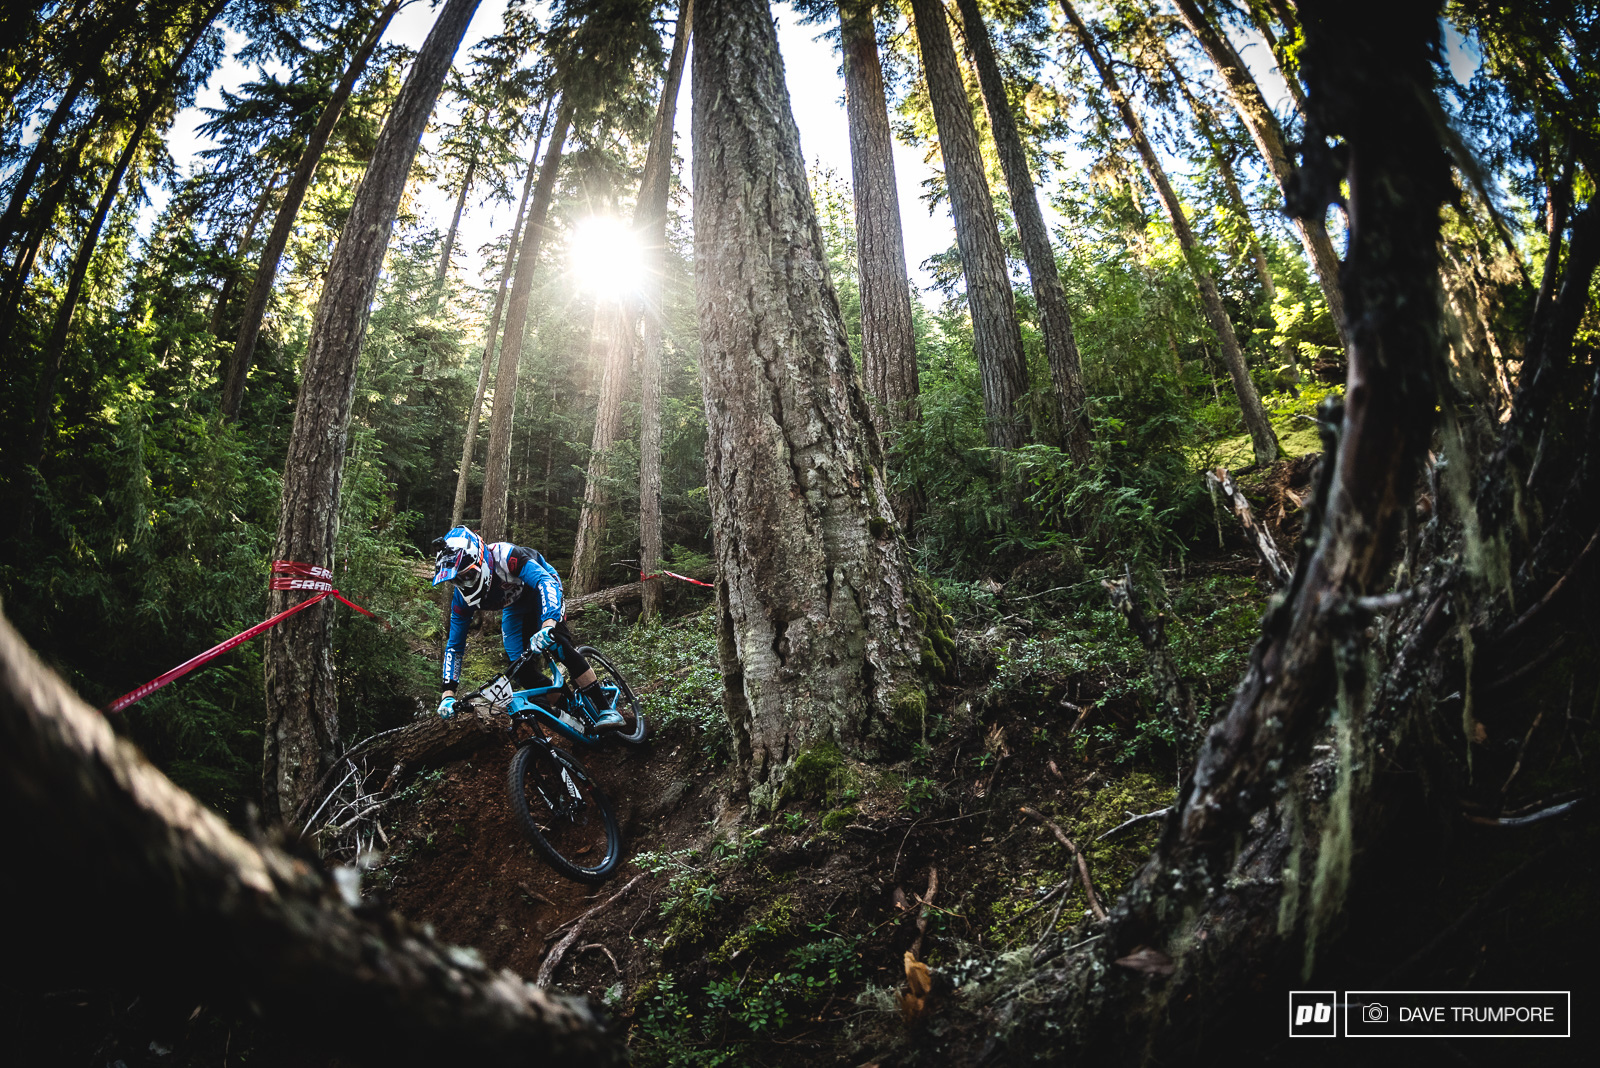 Last year s Whistler EWS belonged to Josh Carlson. That is until a flat right out of the gate on the final stage saw his race lead evaporate in an instant. To say he is looking for redemption this weekend is an understatement.